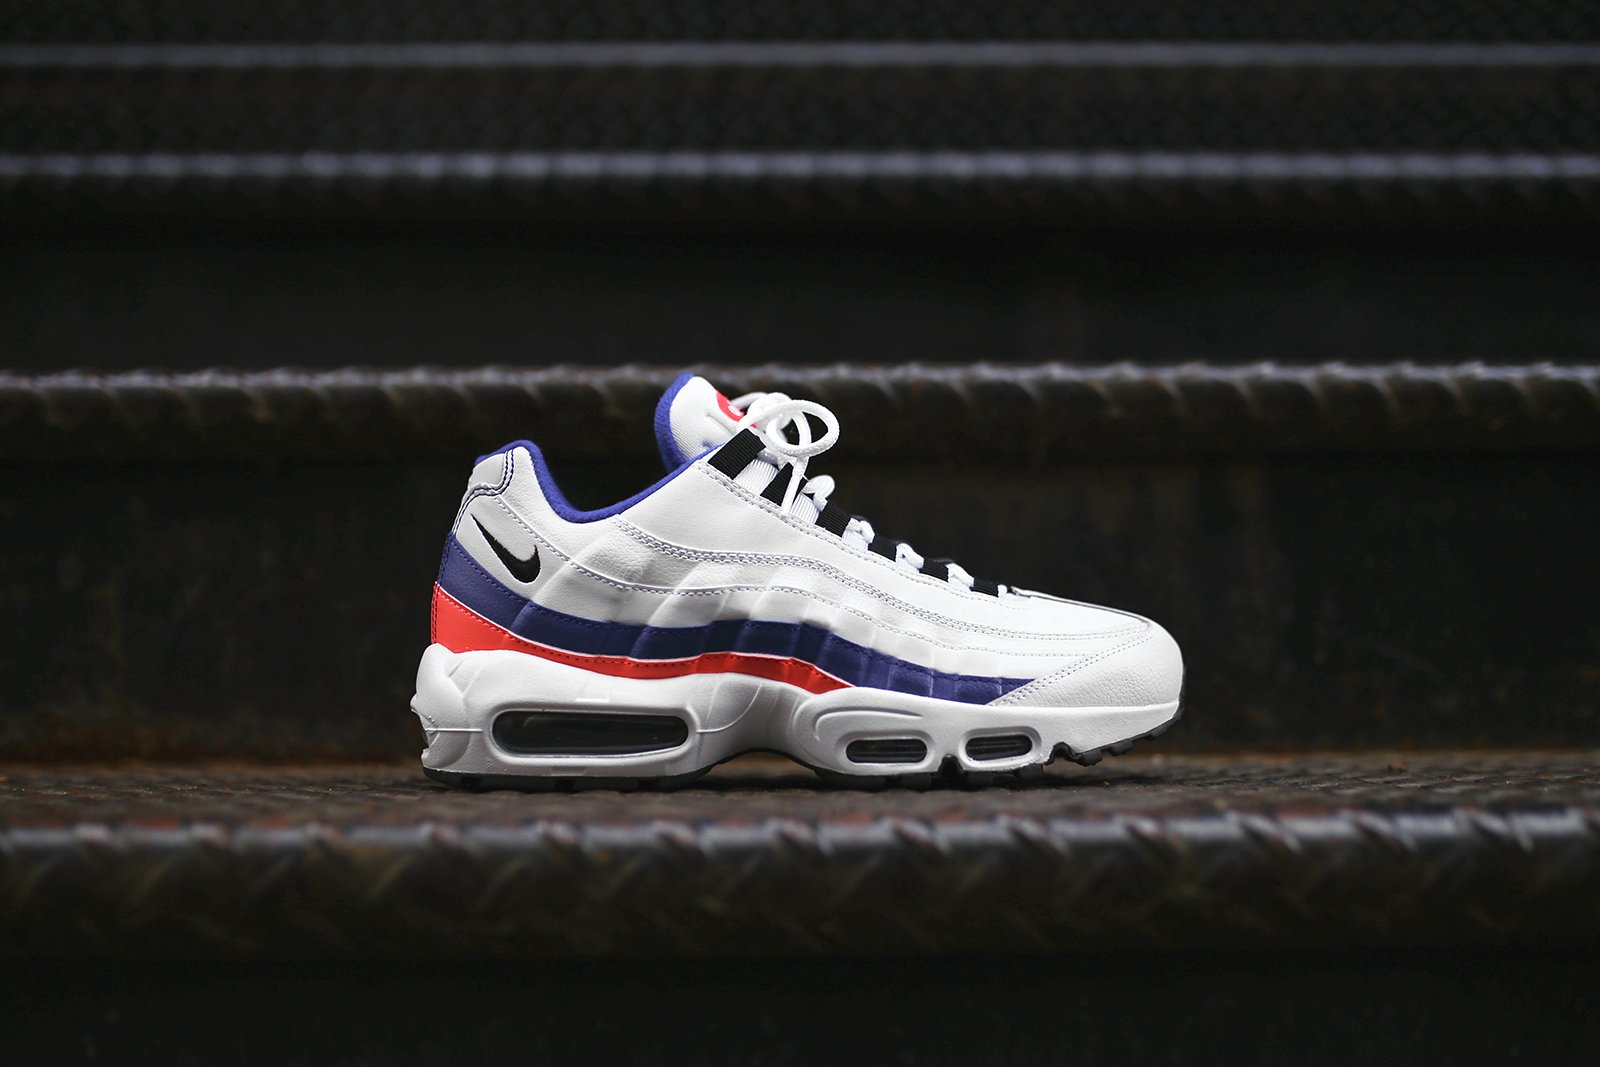 12649dd7e0 Very Goods | Nike Air Max 95 Essential - White / Blue / Red – Kith